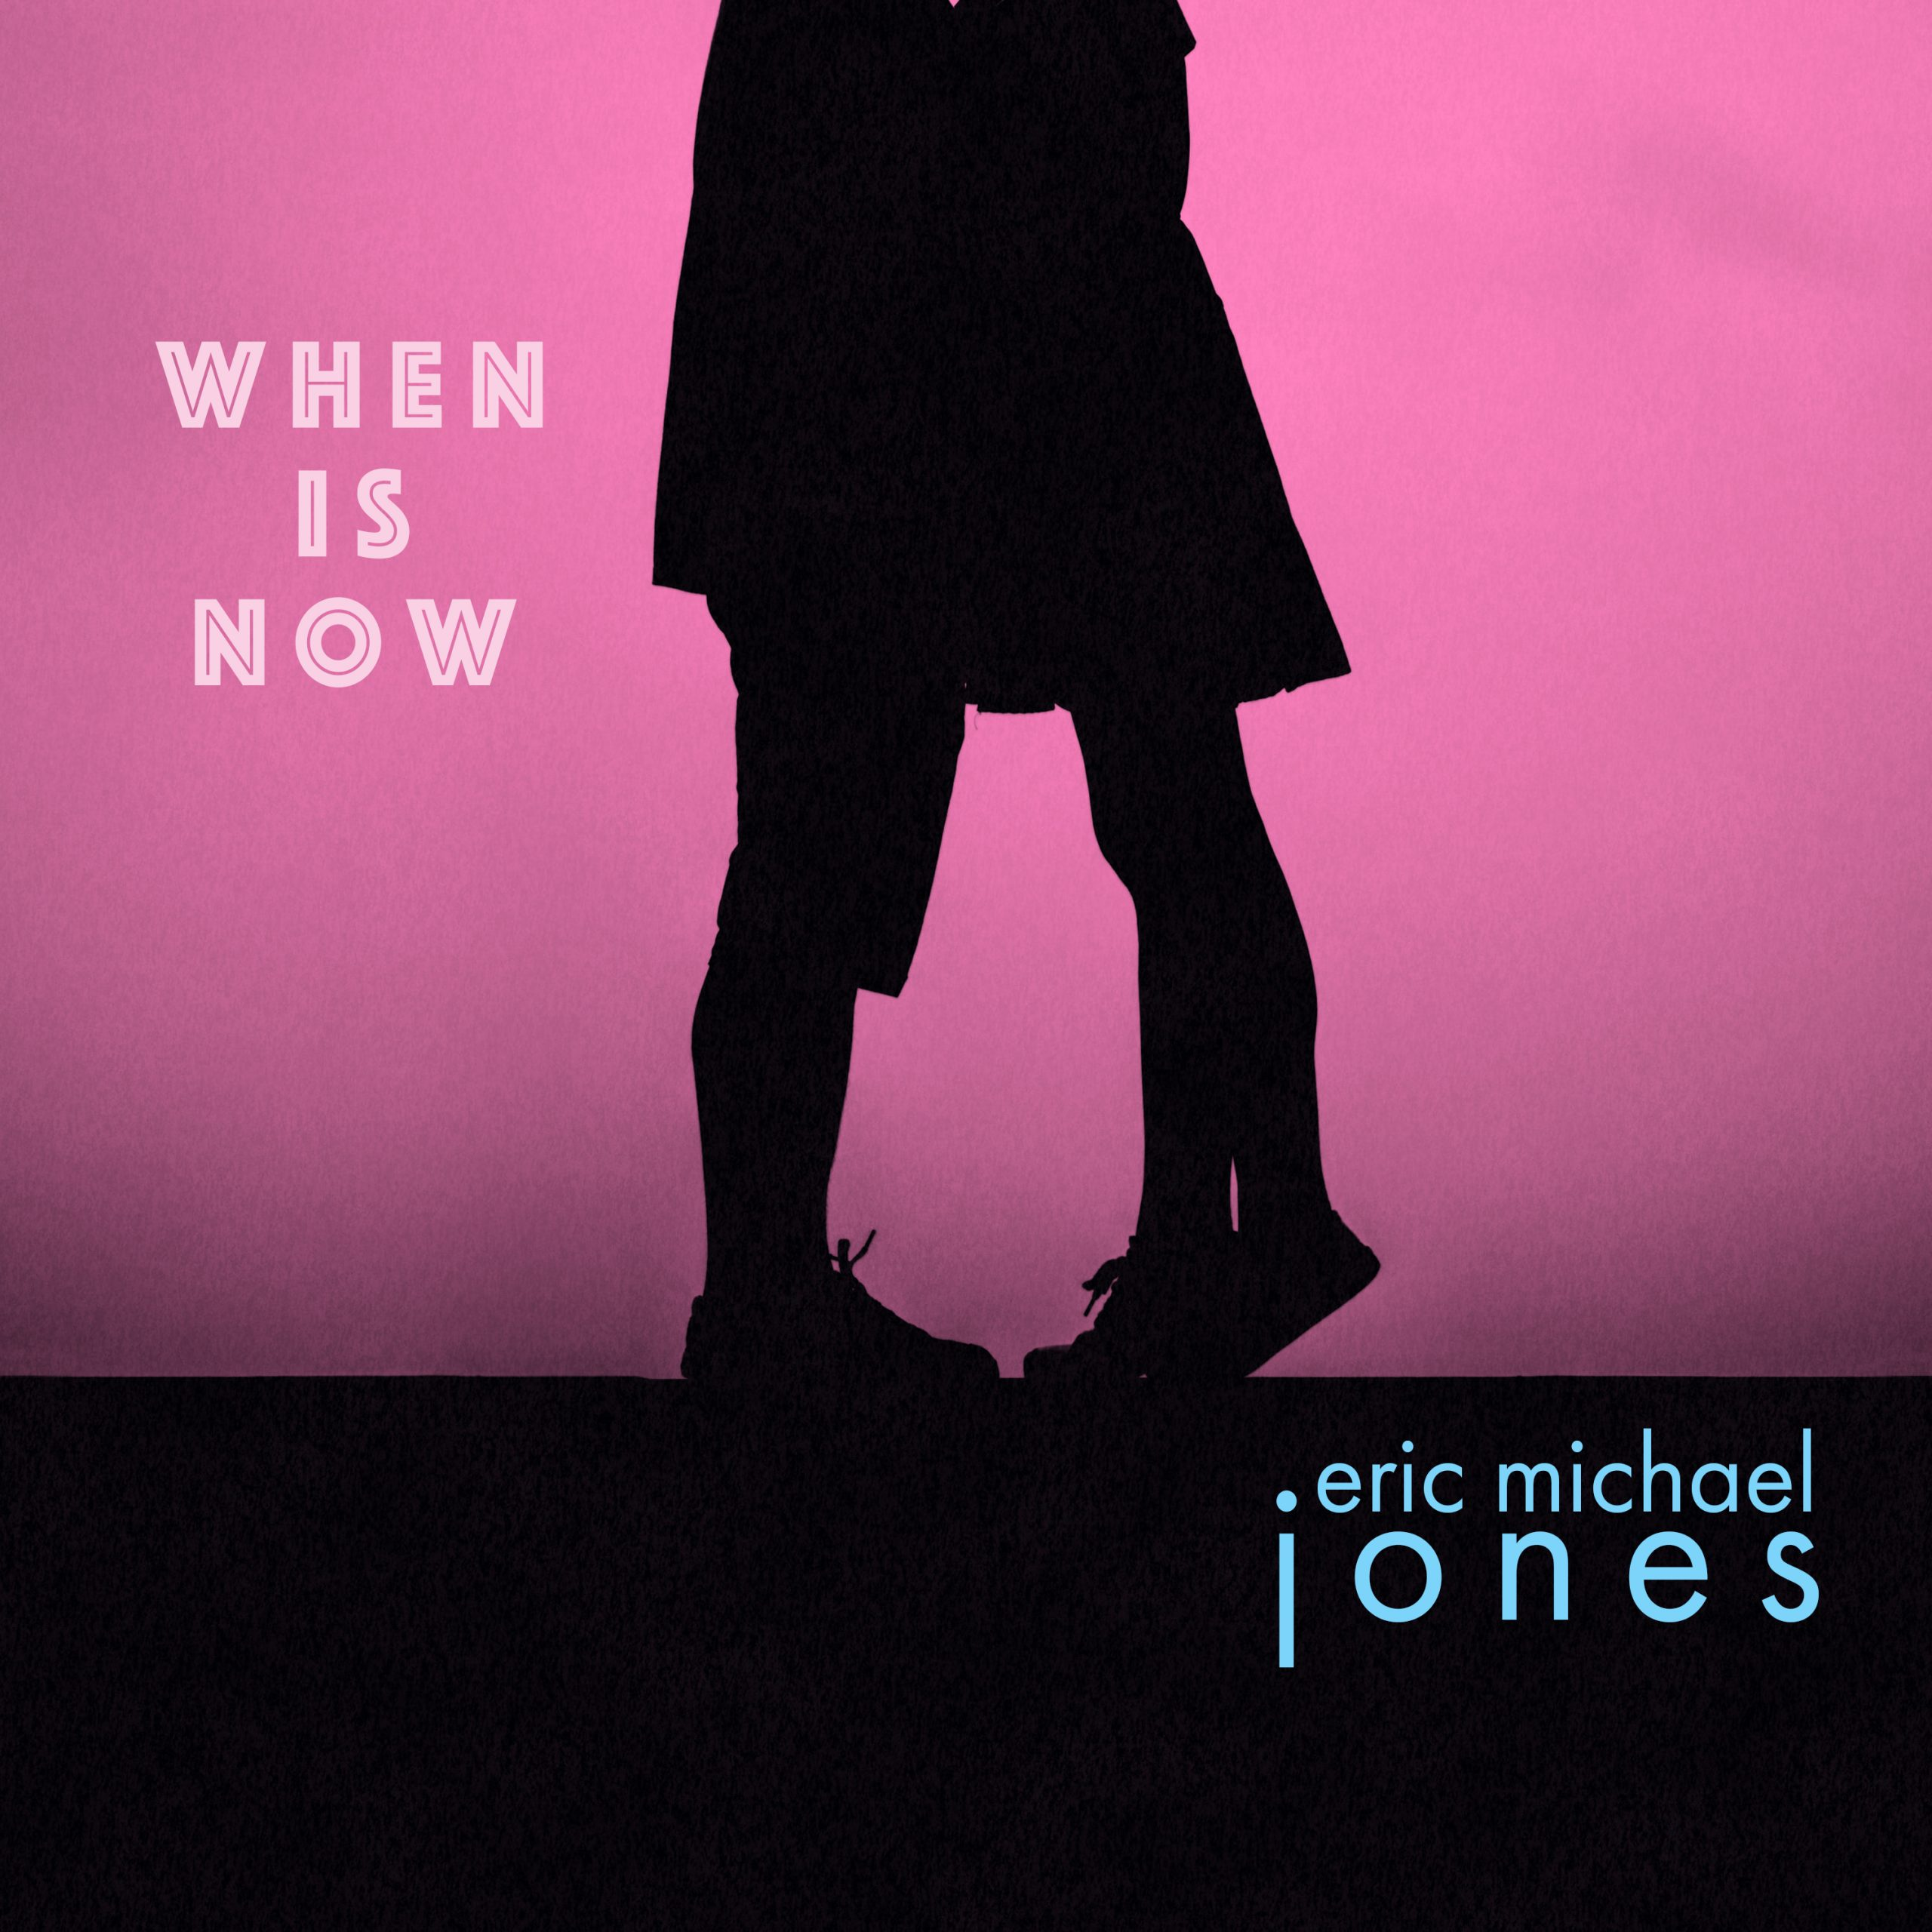 Cover art for When Is Now, showing the silhouette of two lovers kissing